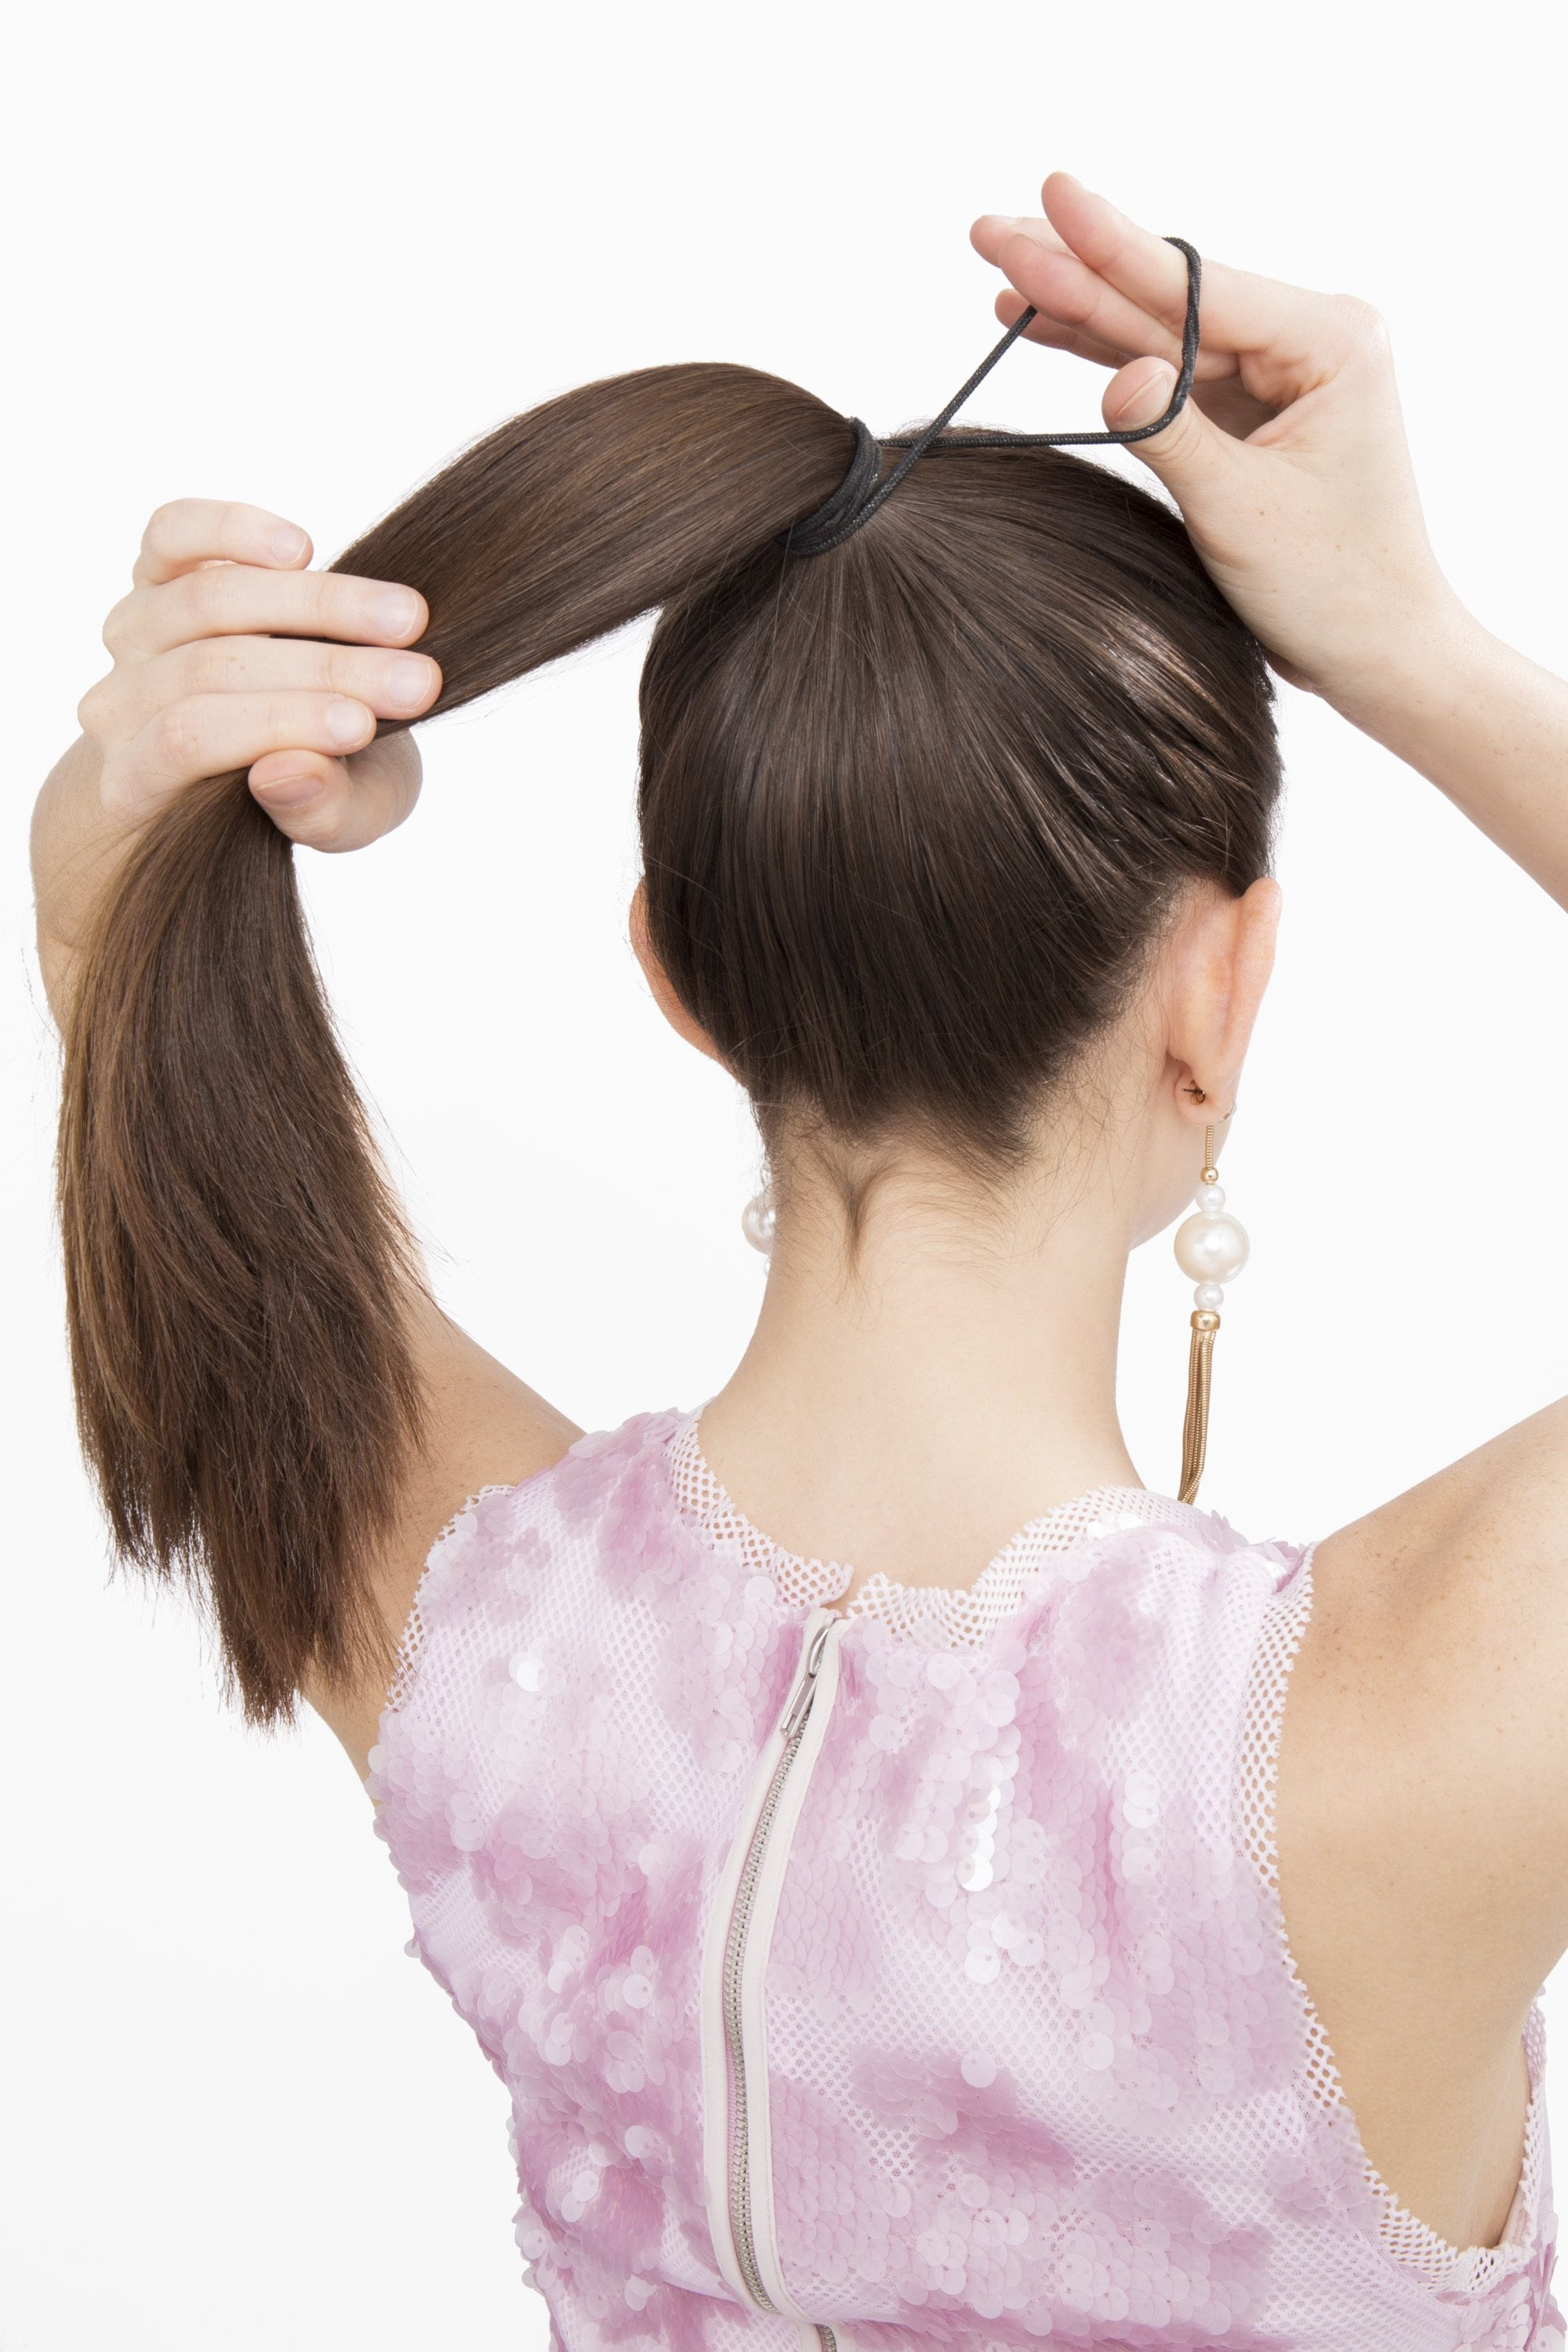 How To Use A Hair Donut To Make A Donut Bun